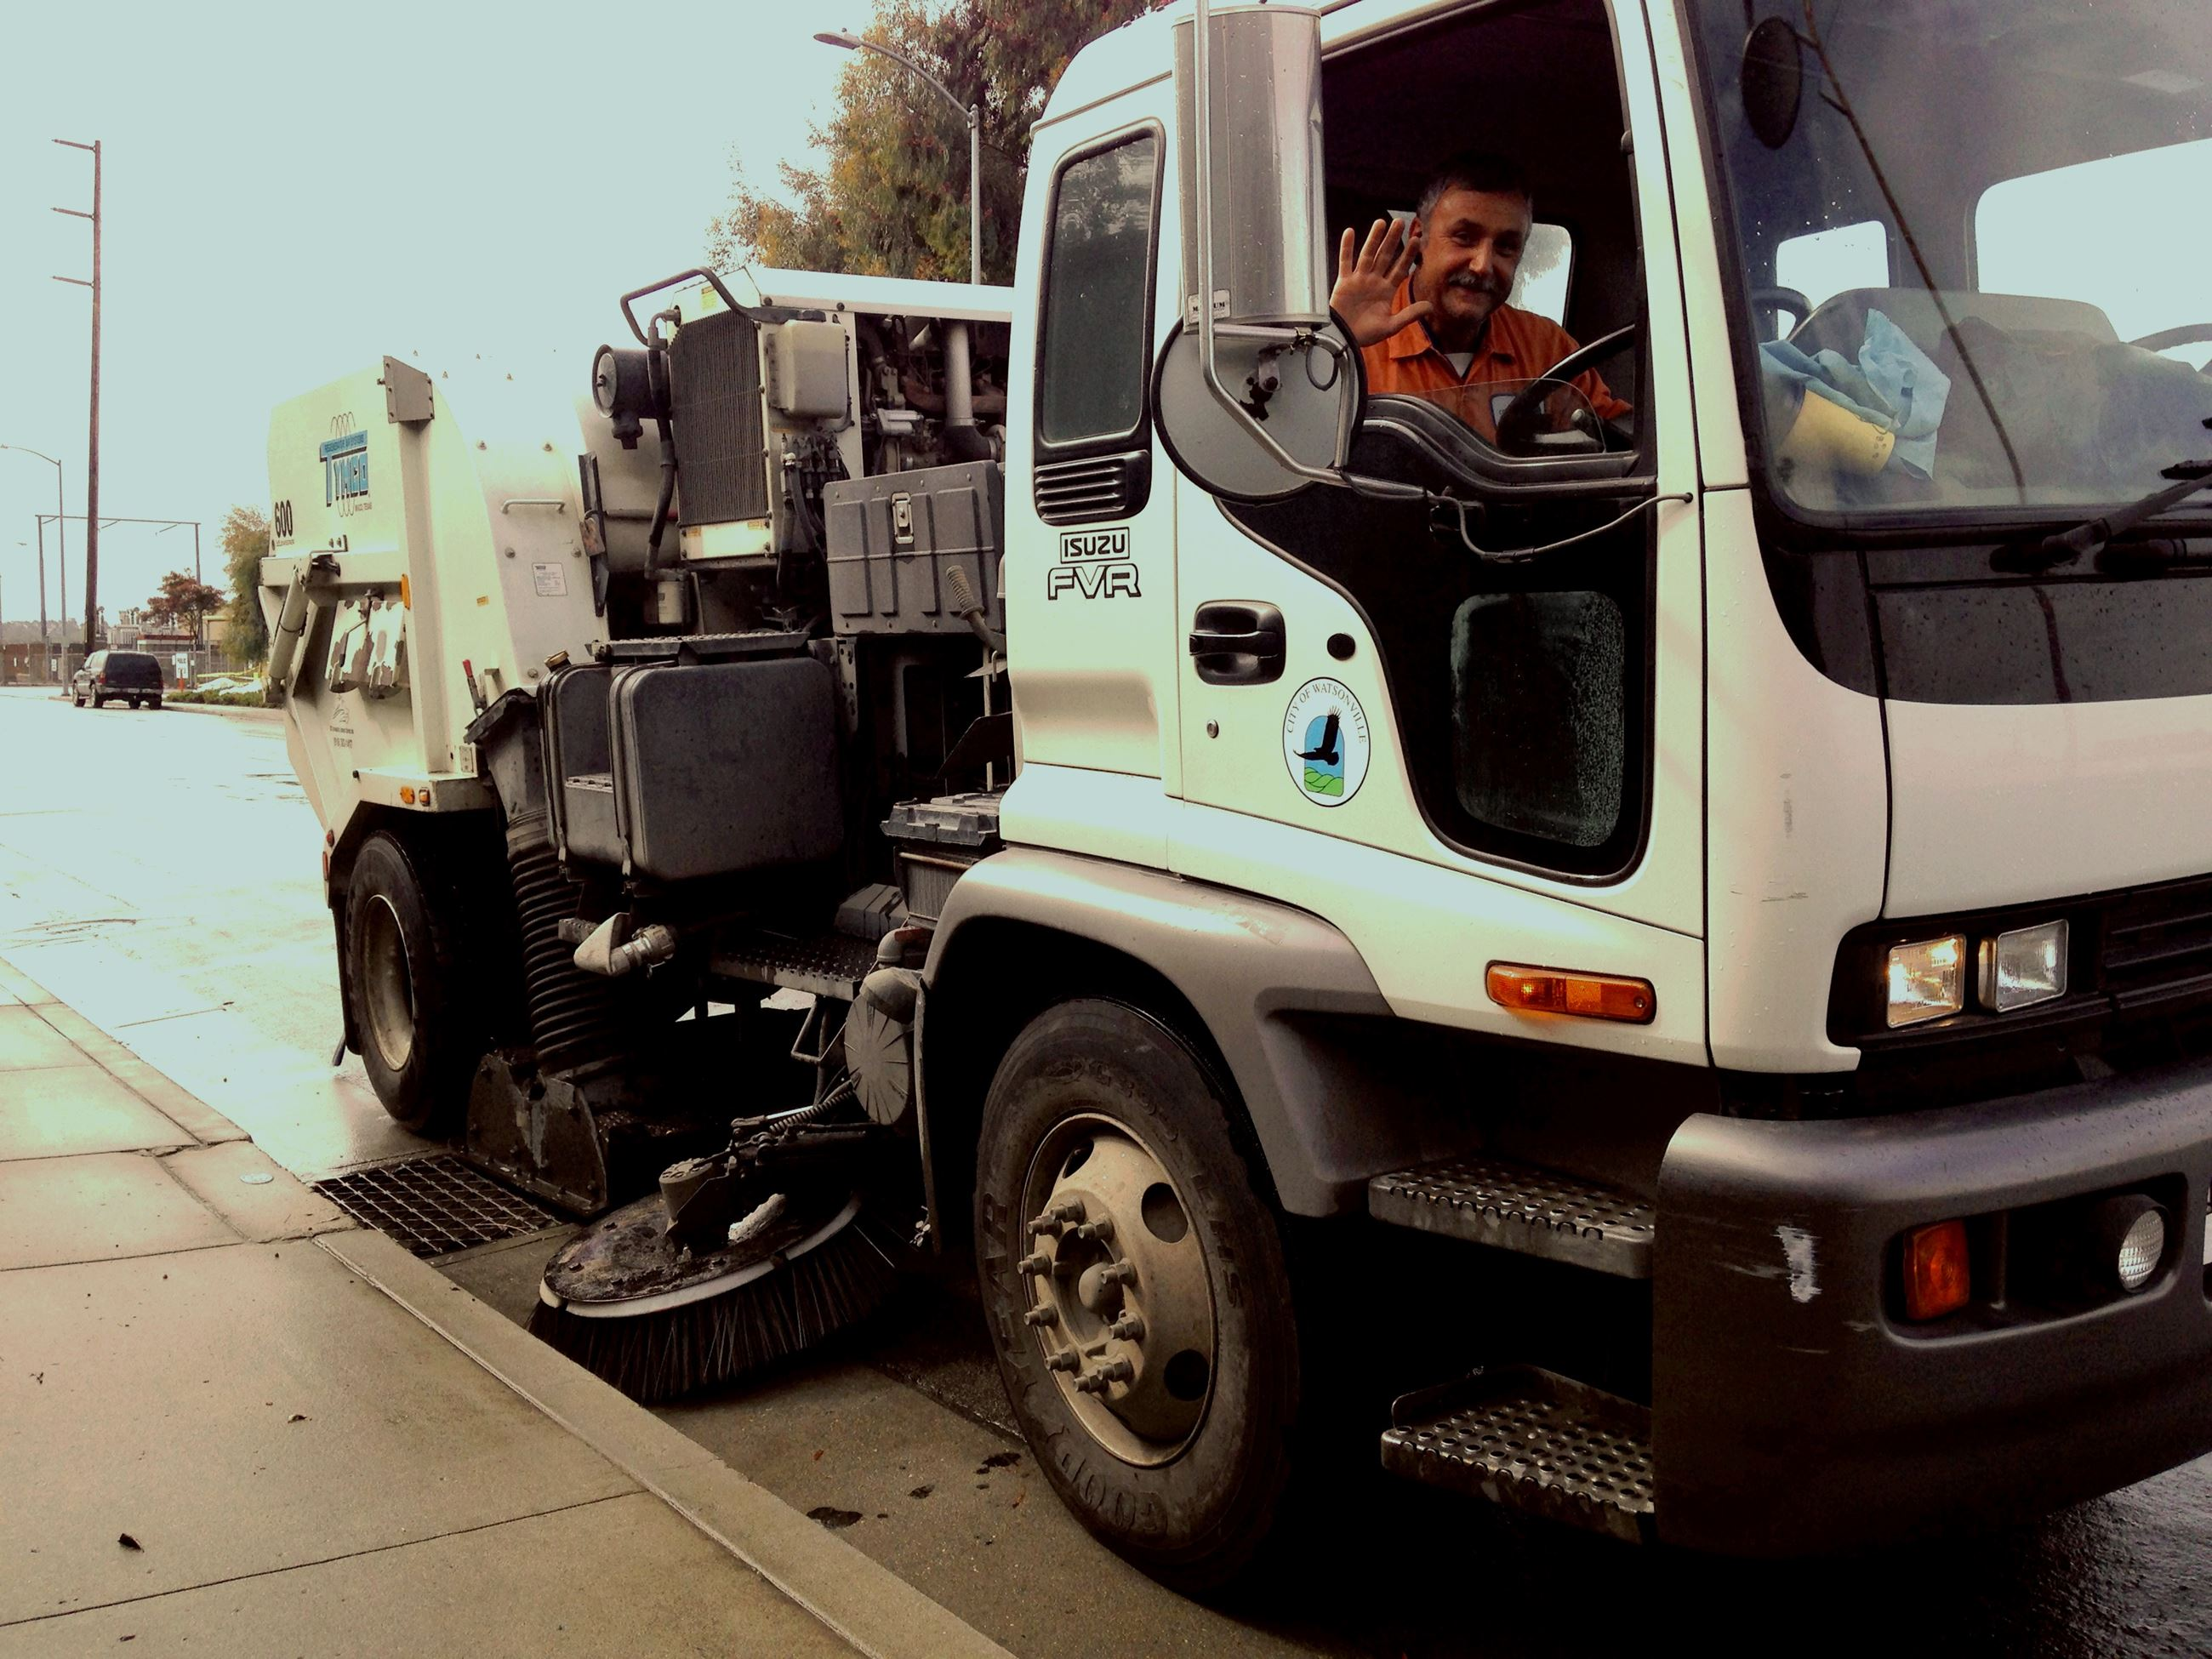 Street sweeper driver waving from truck